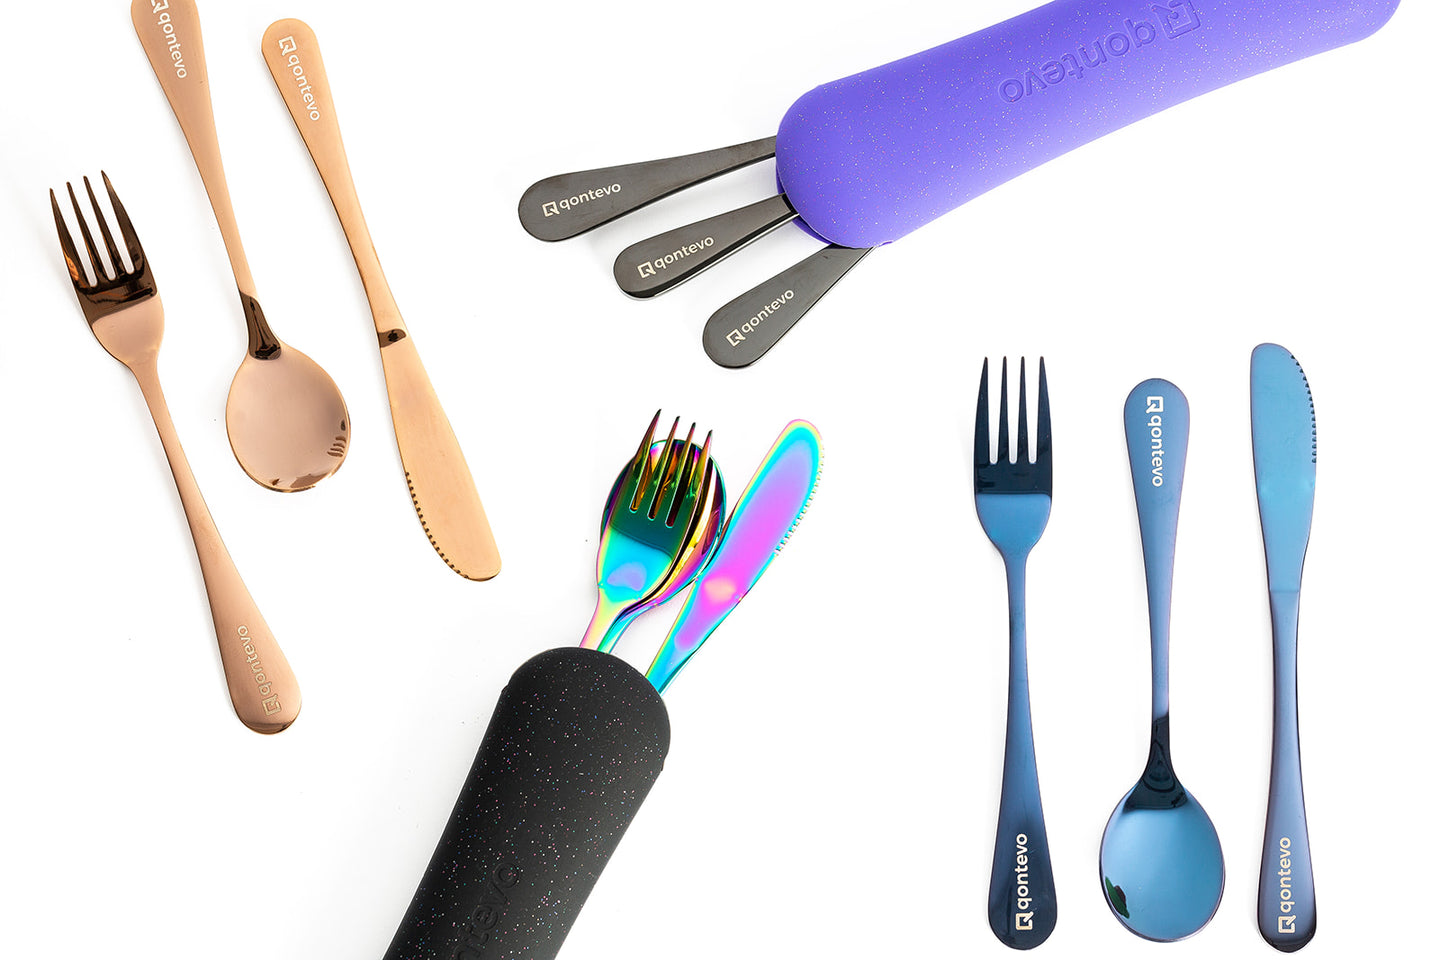 qontevo travel BYO reusable cutlery utensils